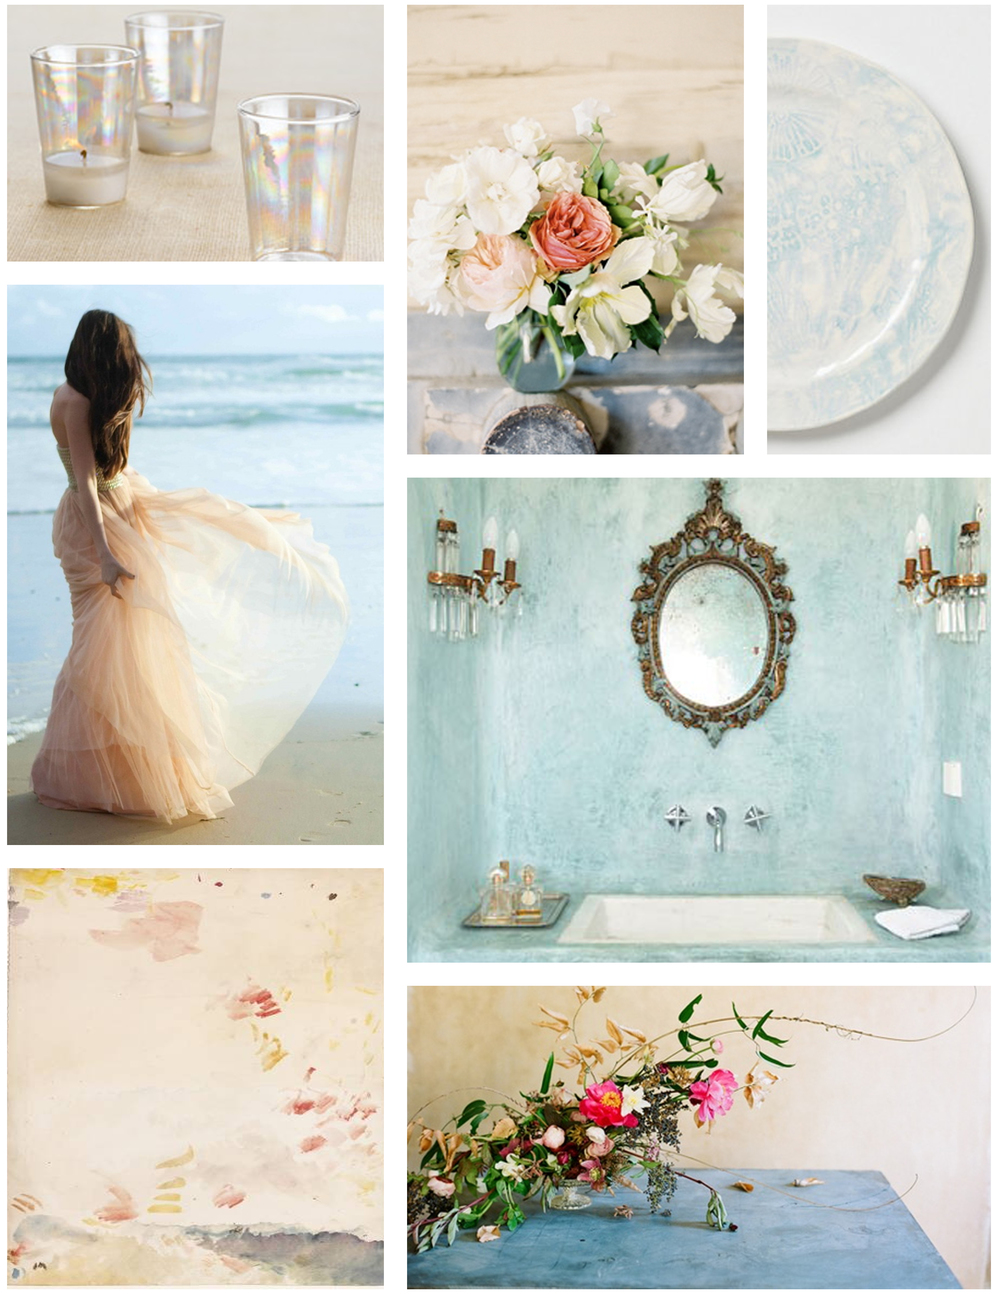 beach-wedding-inspiration-board-blue-peach-pink